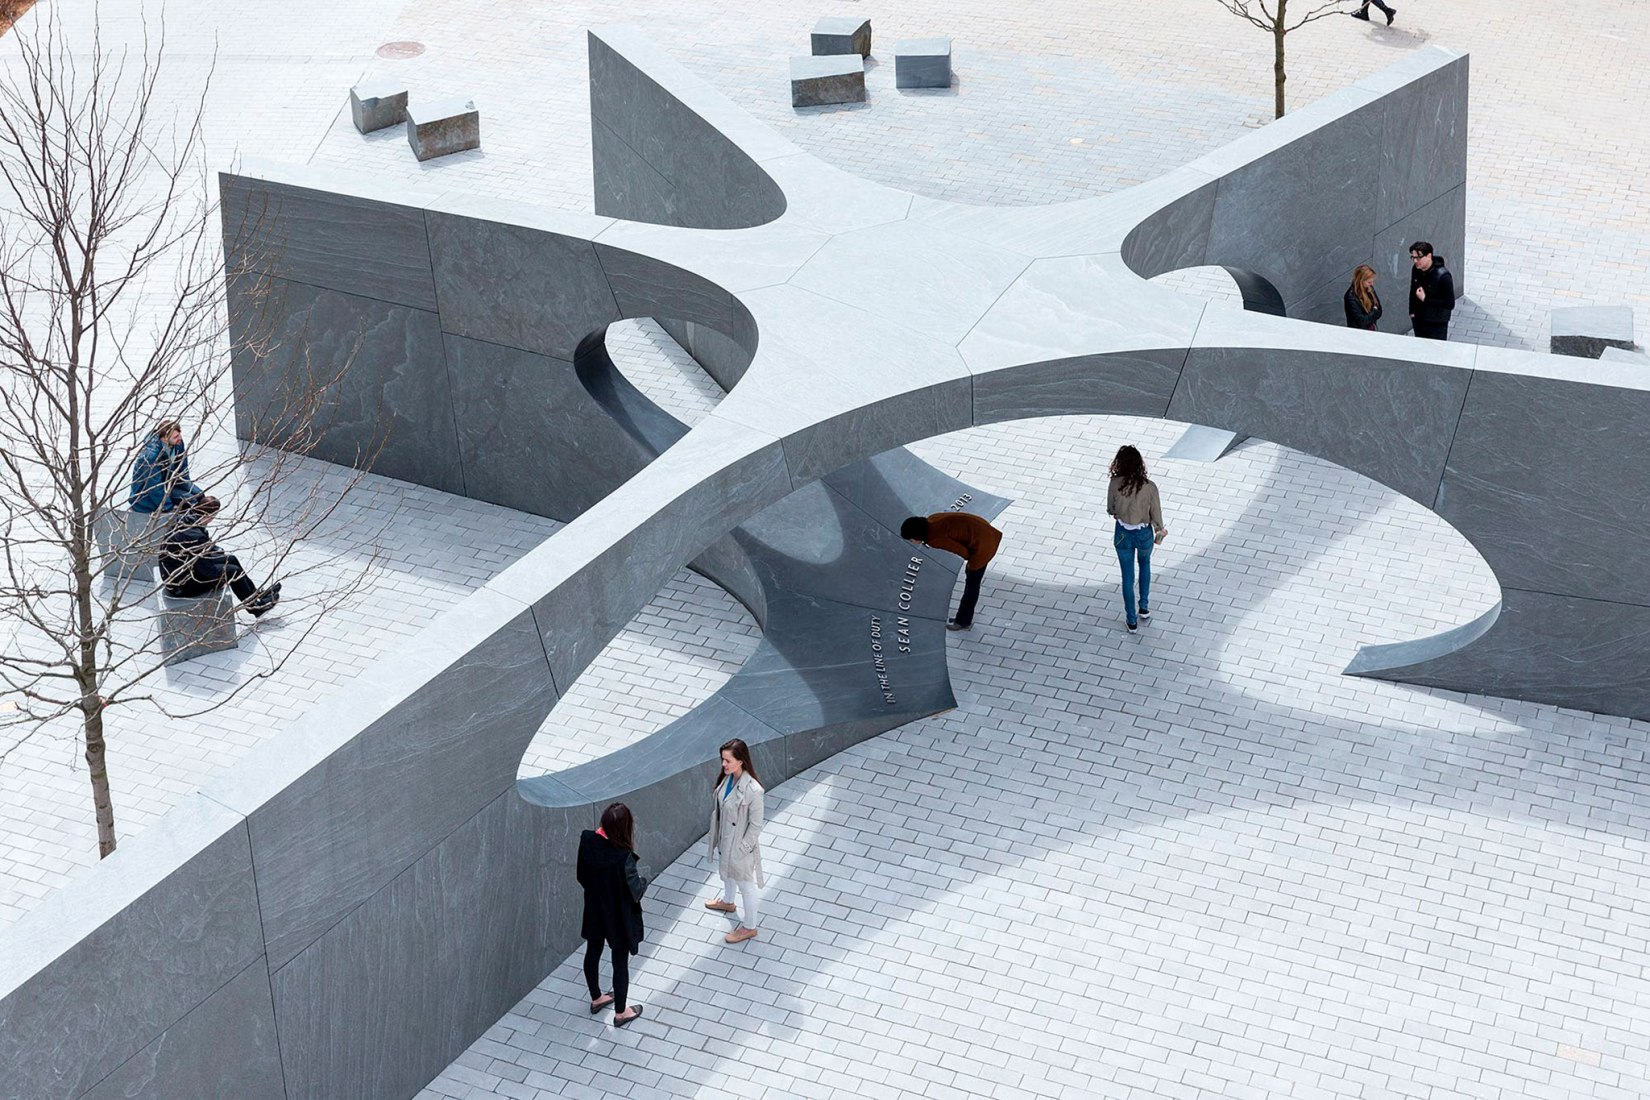 MIT Sean Collier Memorial by Höweler+Yoon Architecture. Photograph by Iwan Baan